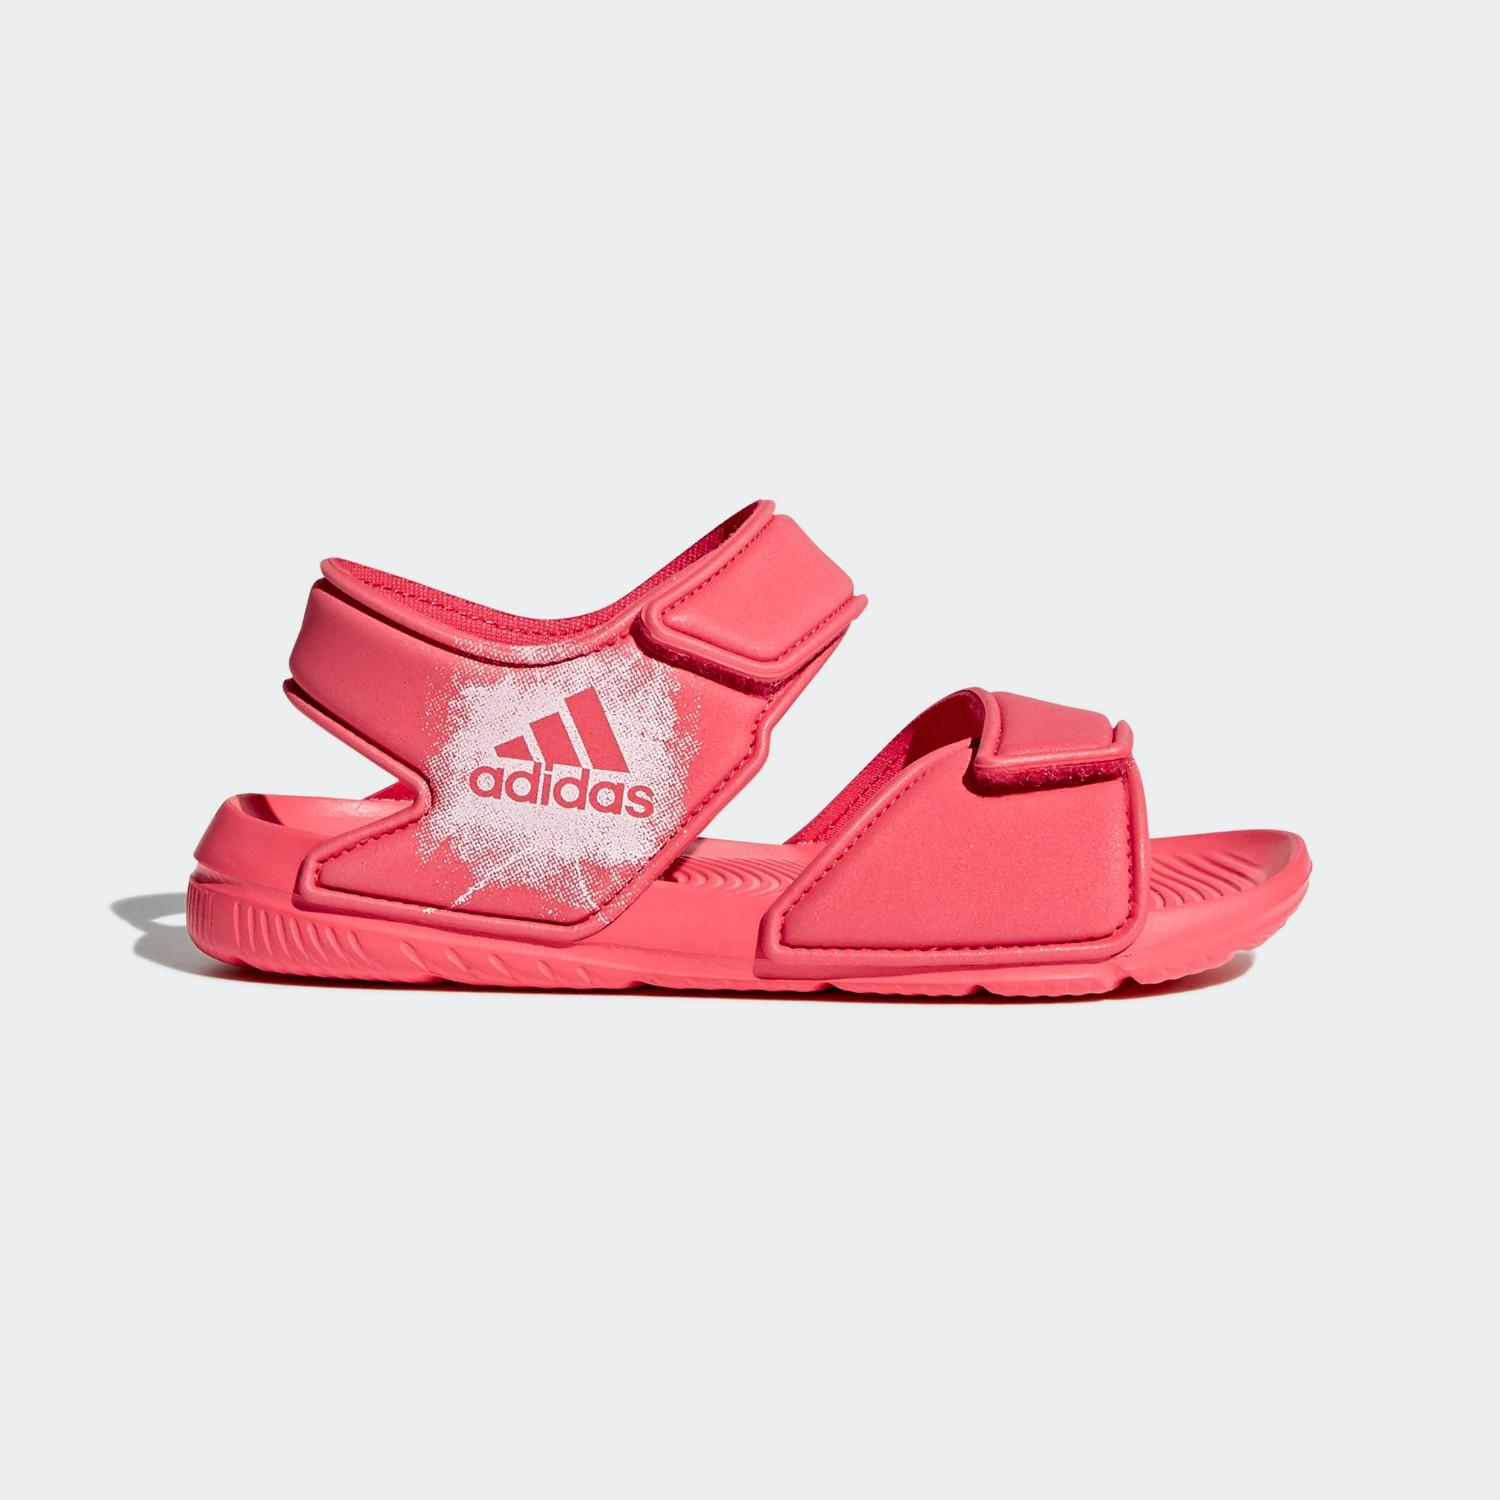 Adidas Altaswim Girls Sandals Ba7849 By Lazada Retail Adidas Official Store.